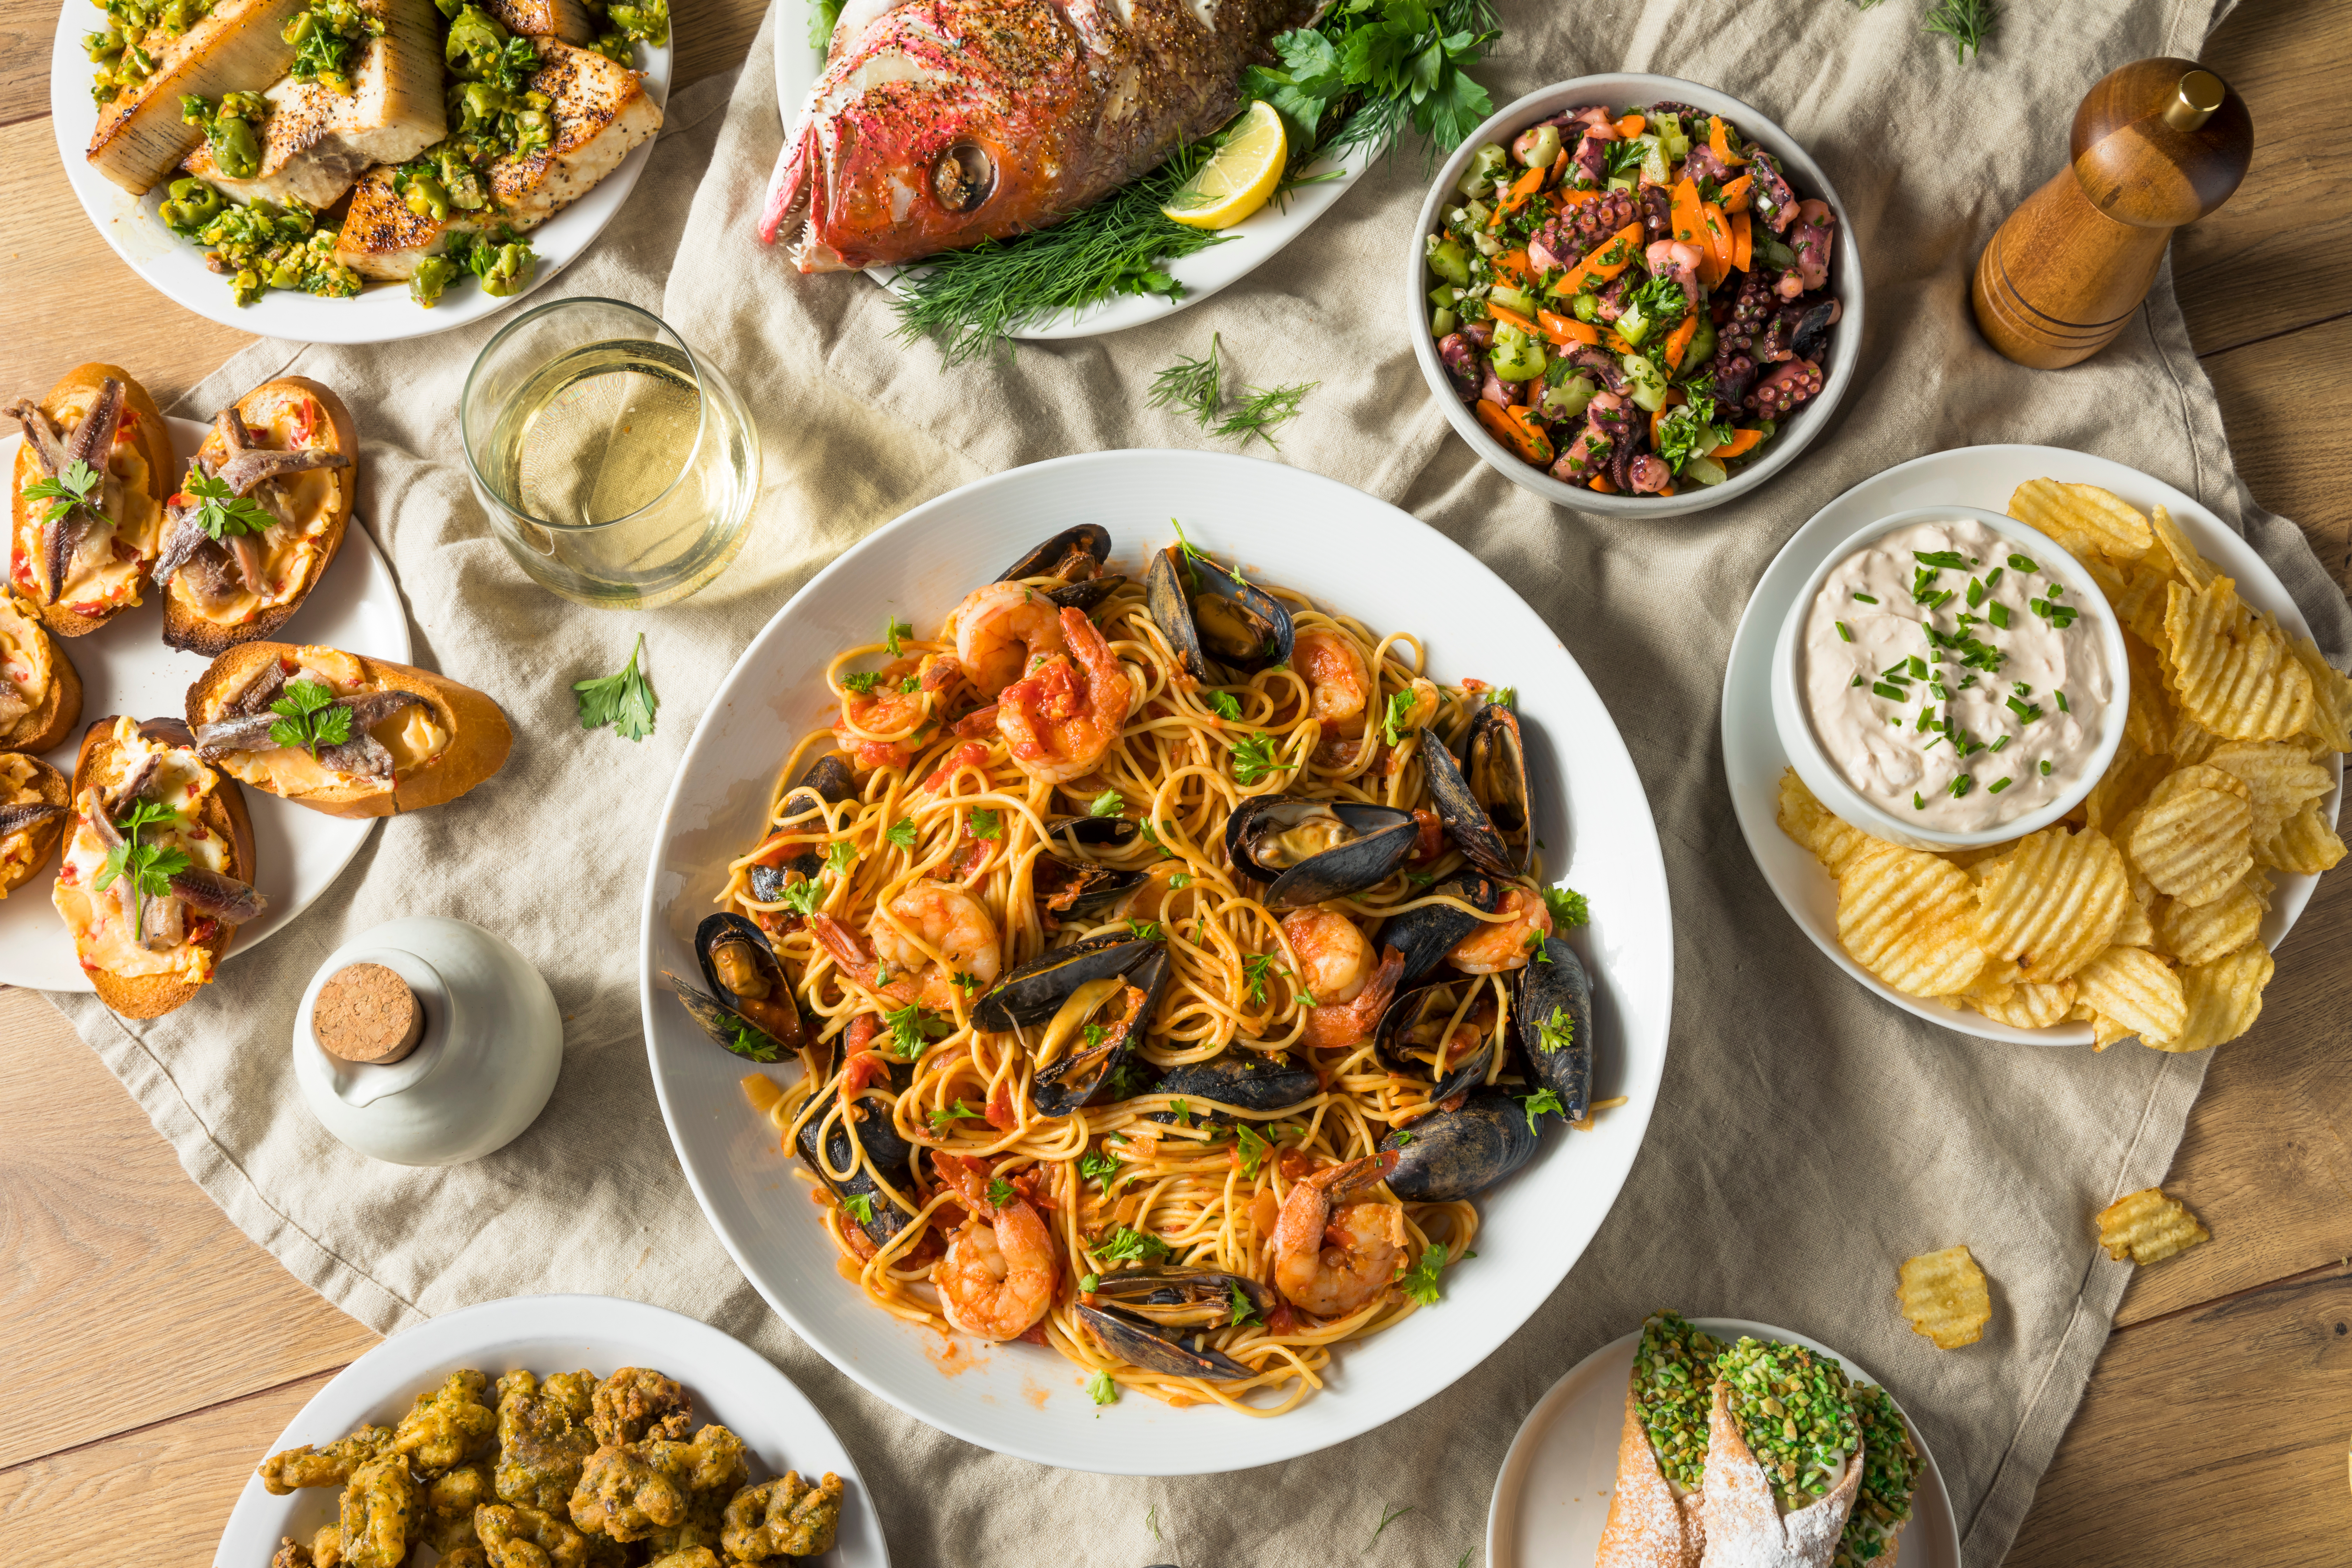 An array of dishes for the Feast of the Seven Fishes